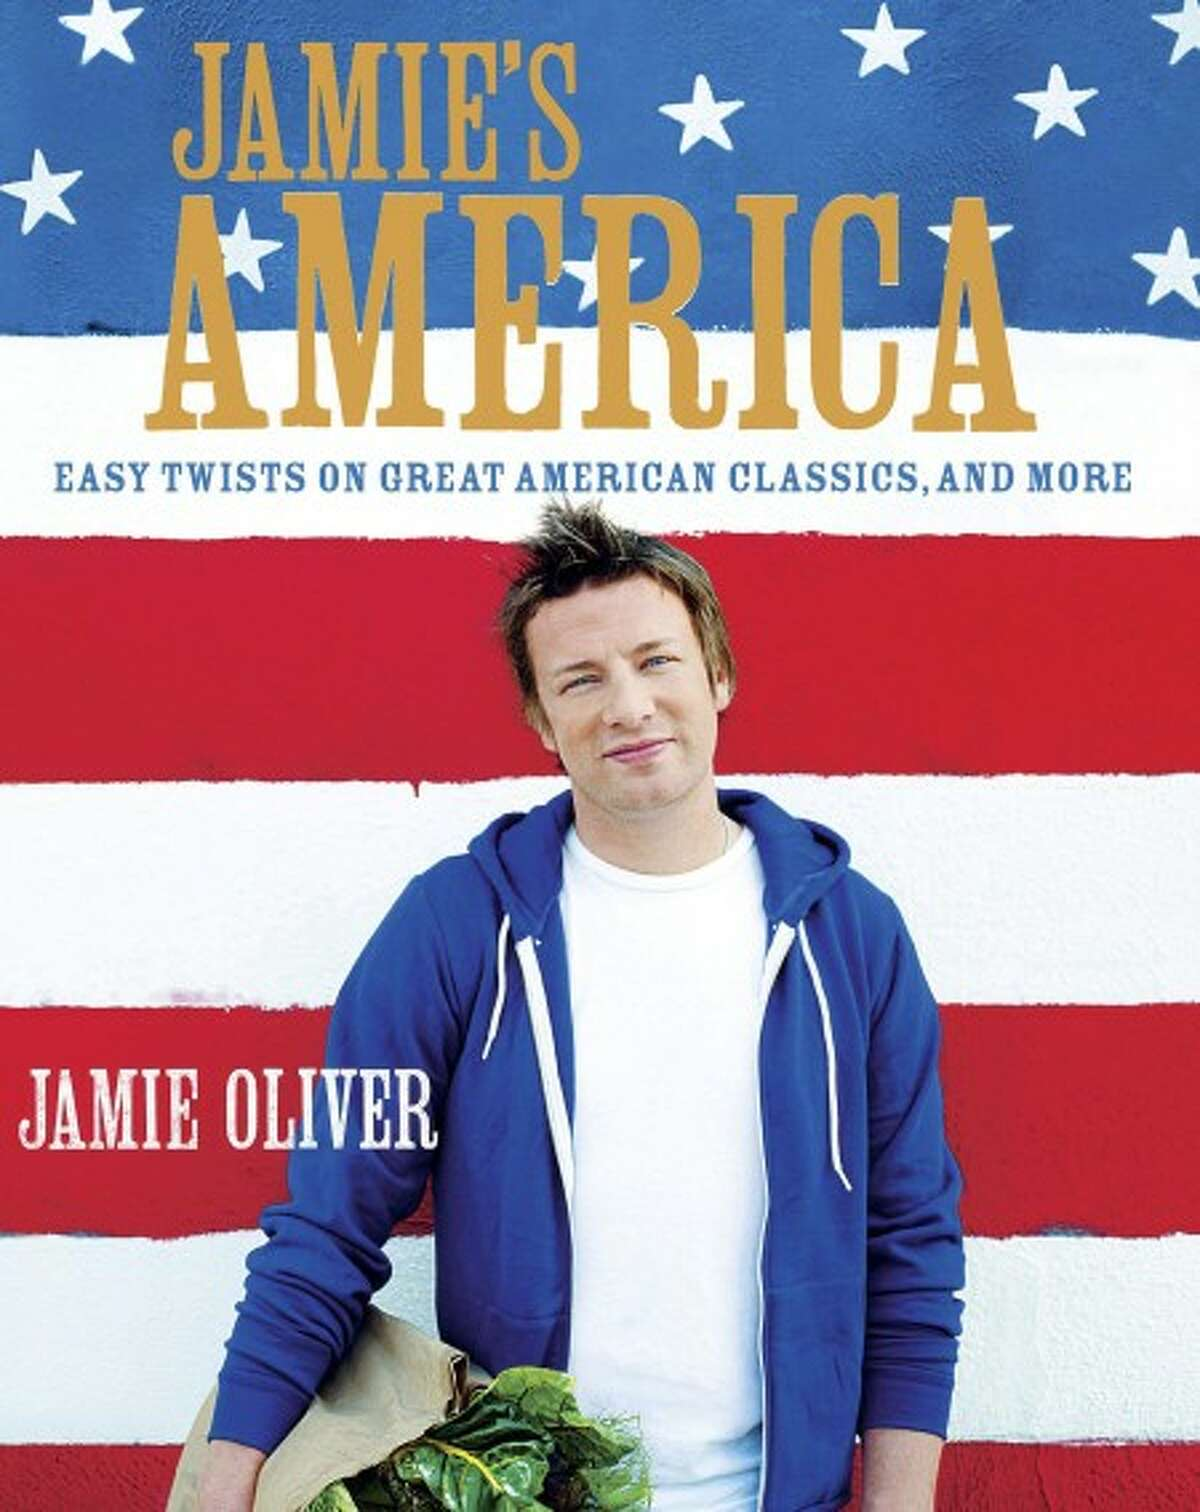 """This book cover image courtesy of Hyperion shows the cover of """"Jamie''s America: Easy Twists on Great American Classics, and More,"""" by chef Jamie Oliver. Oliver''s newest cookbook explores the rich diversity of America and its food. (AP Photo/Hyperion) NO SALES"""